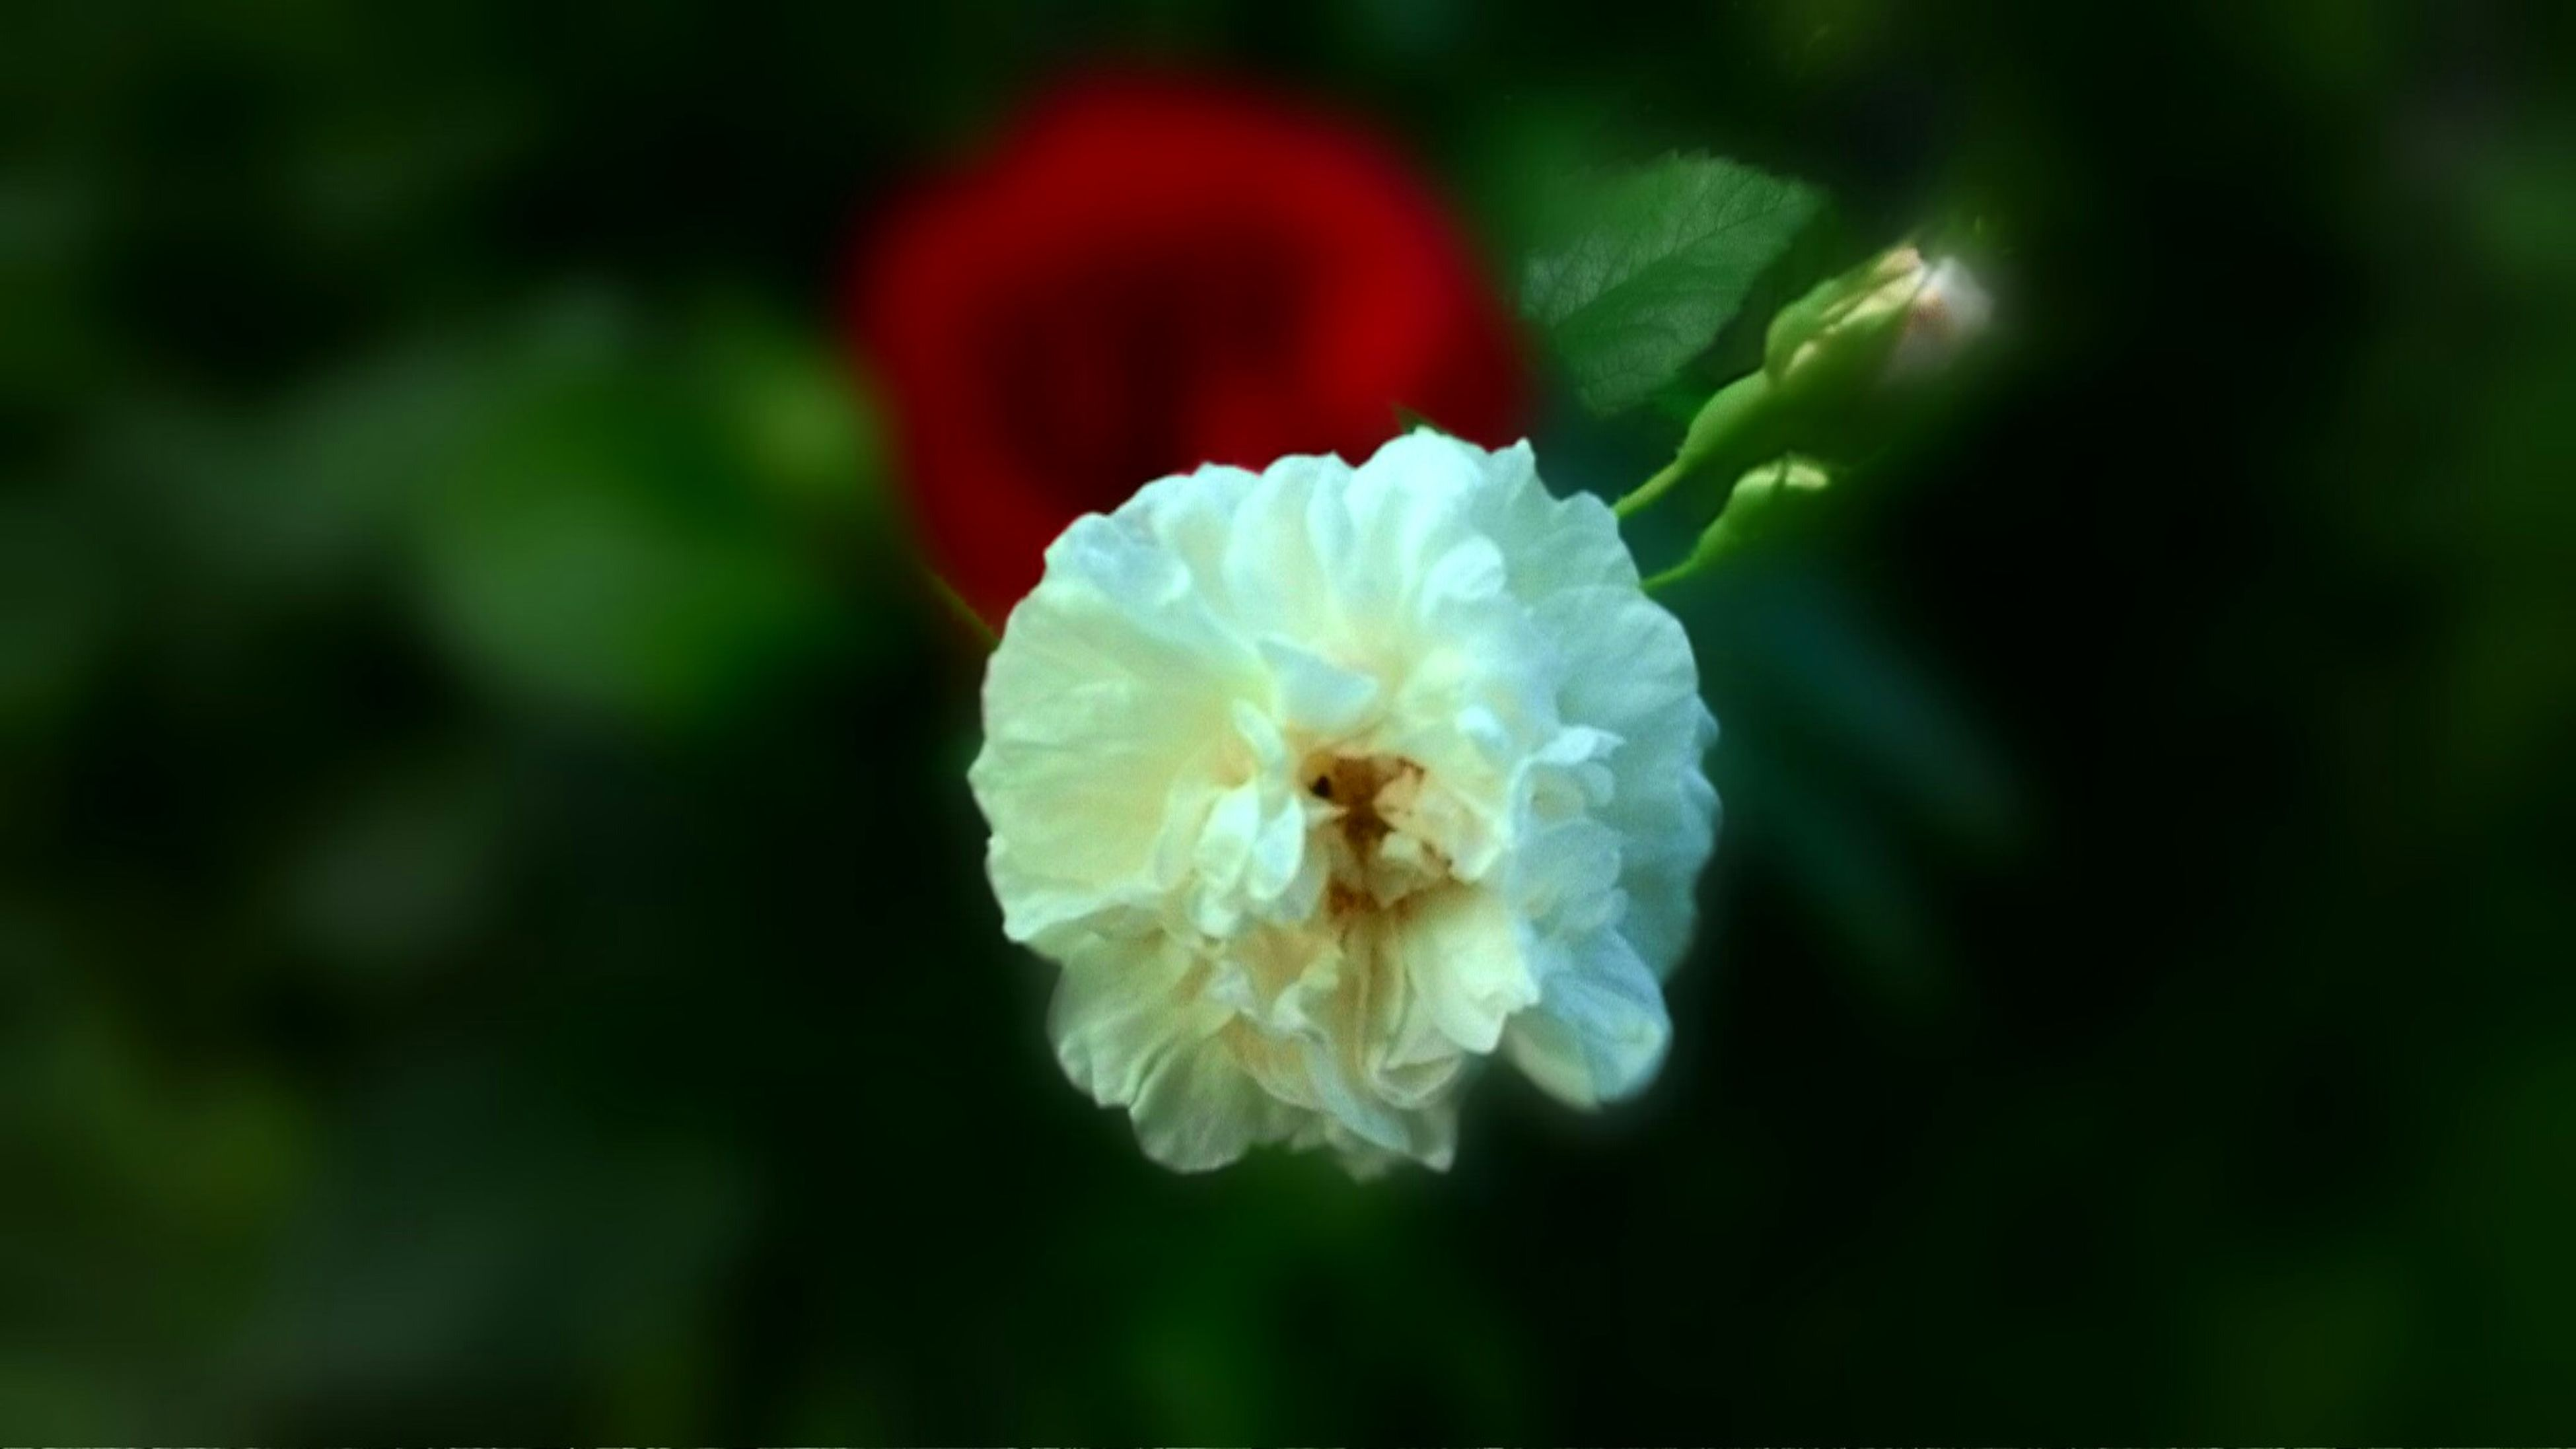 flower, petal, flower head, freshness, fragility, beauty in nature, close-up, growth, focus on foreground, single flower, nature, blooming, in bloom, white color, selective focus, blossom, plant, drop, springtime, no people